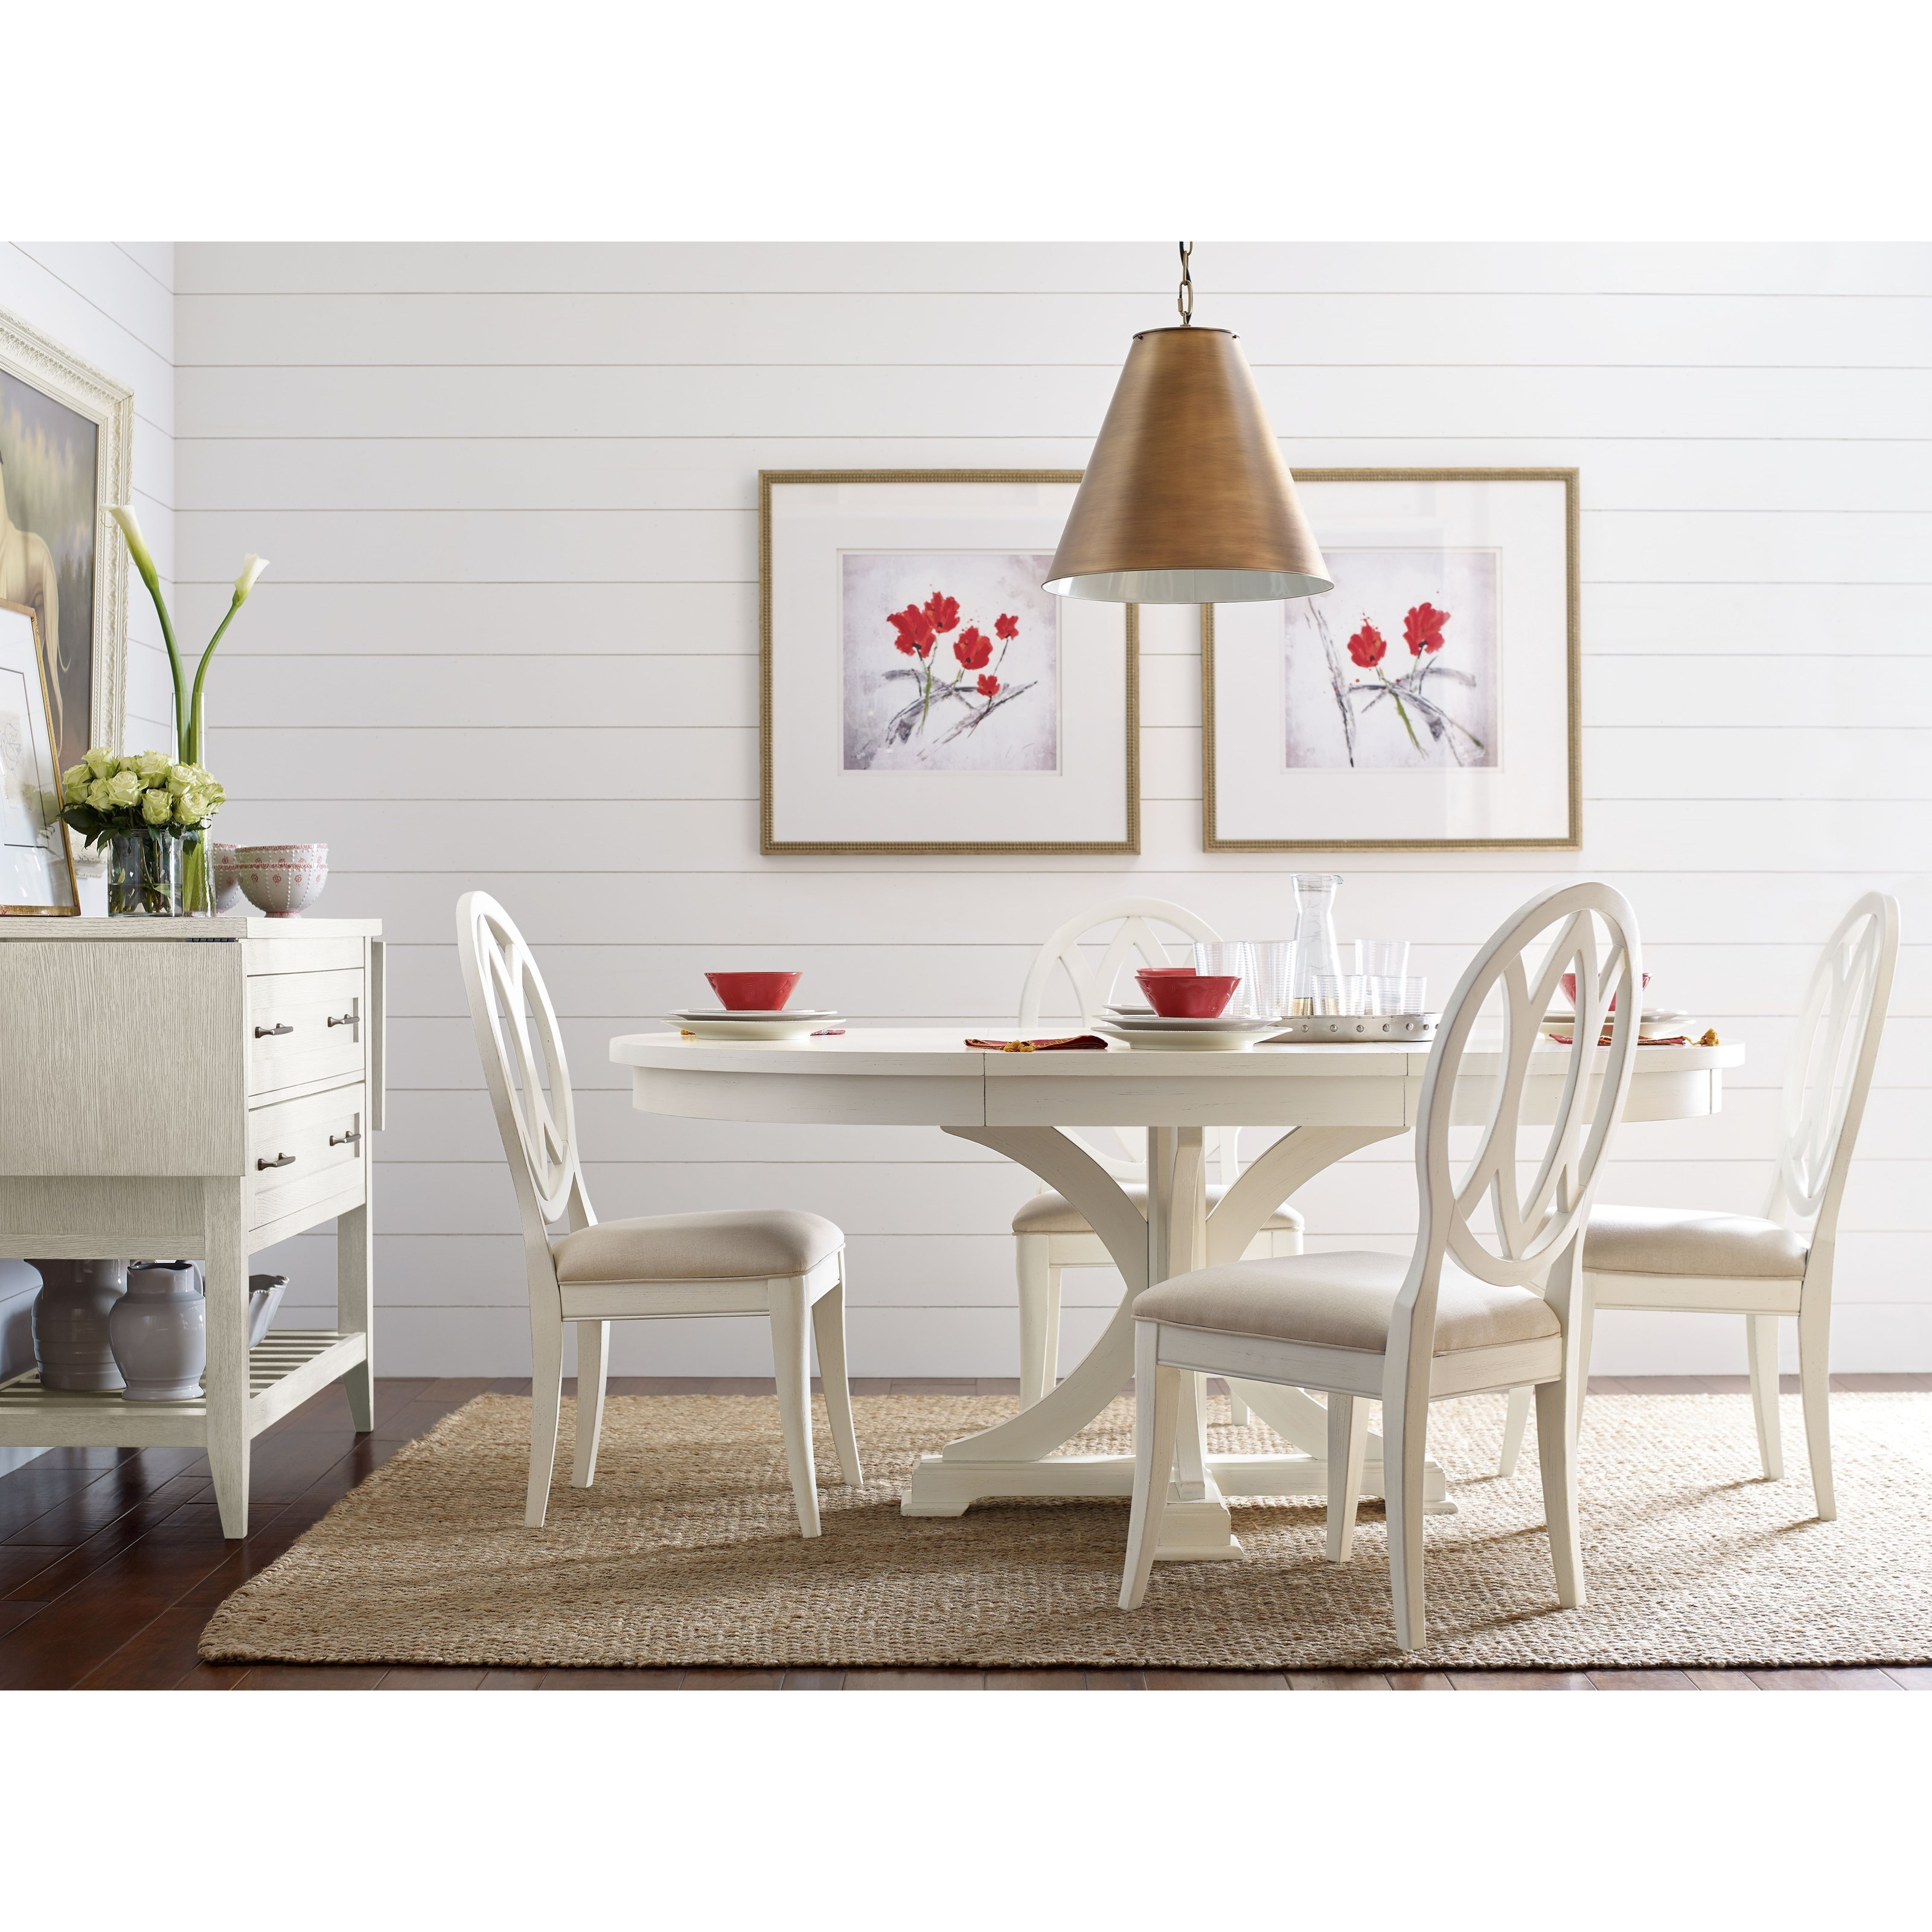 Hayley Dining Room Set: Rachael Ray Home By Legacy Classic Everyday Dining Round